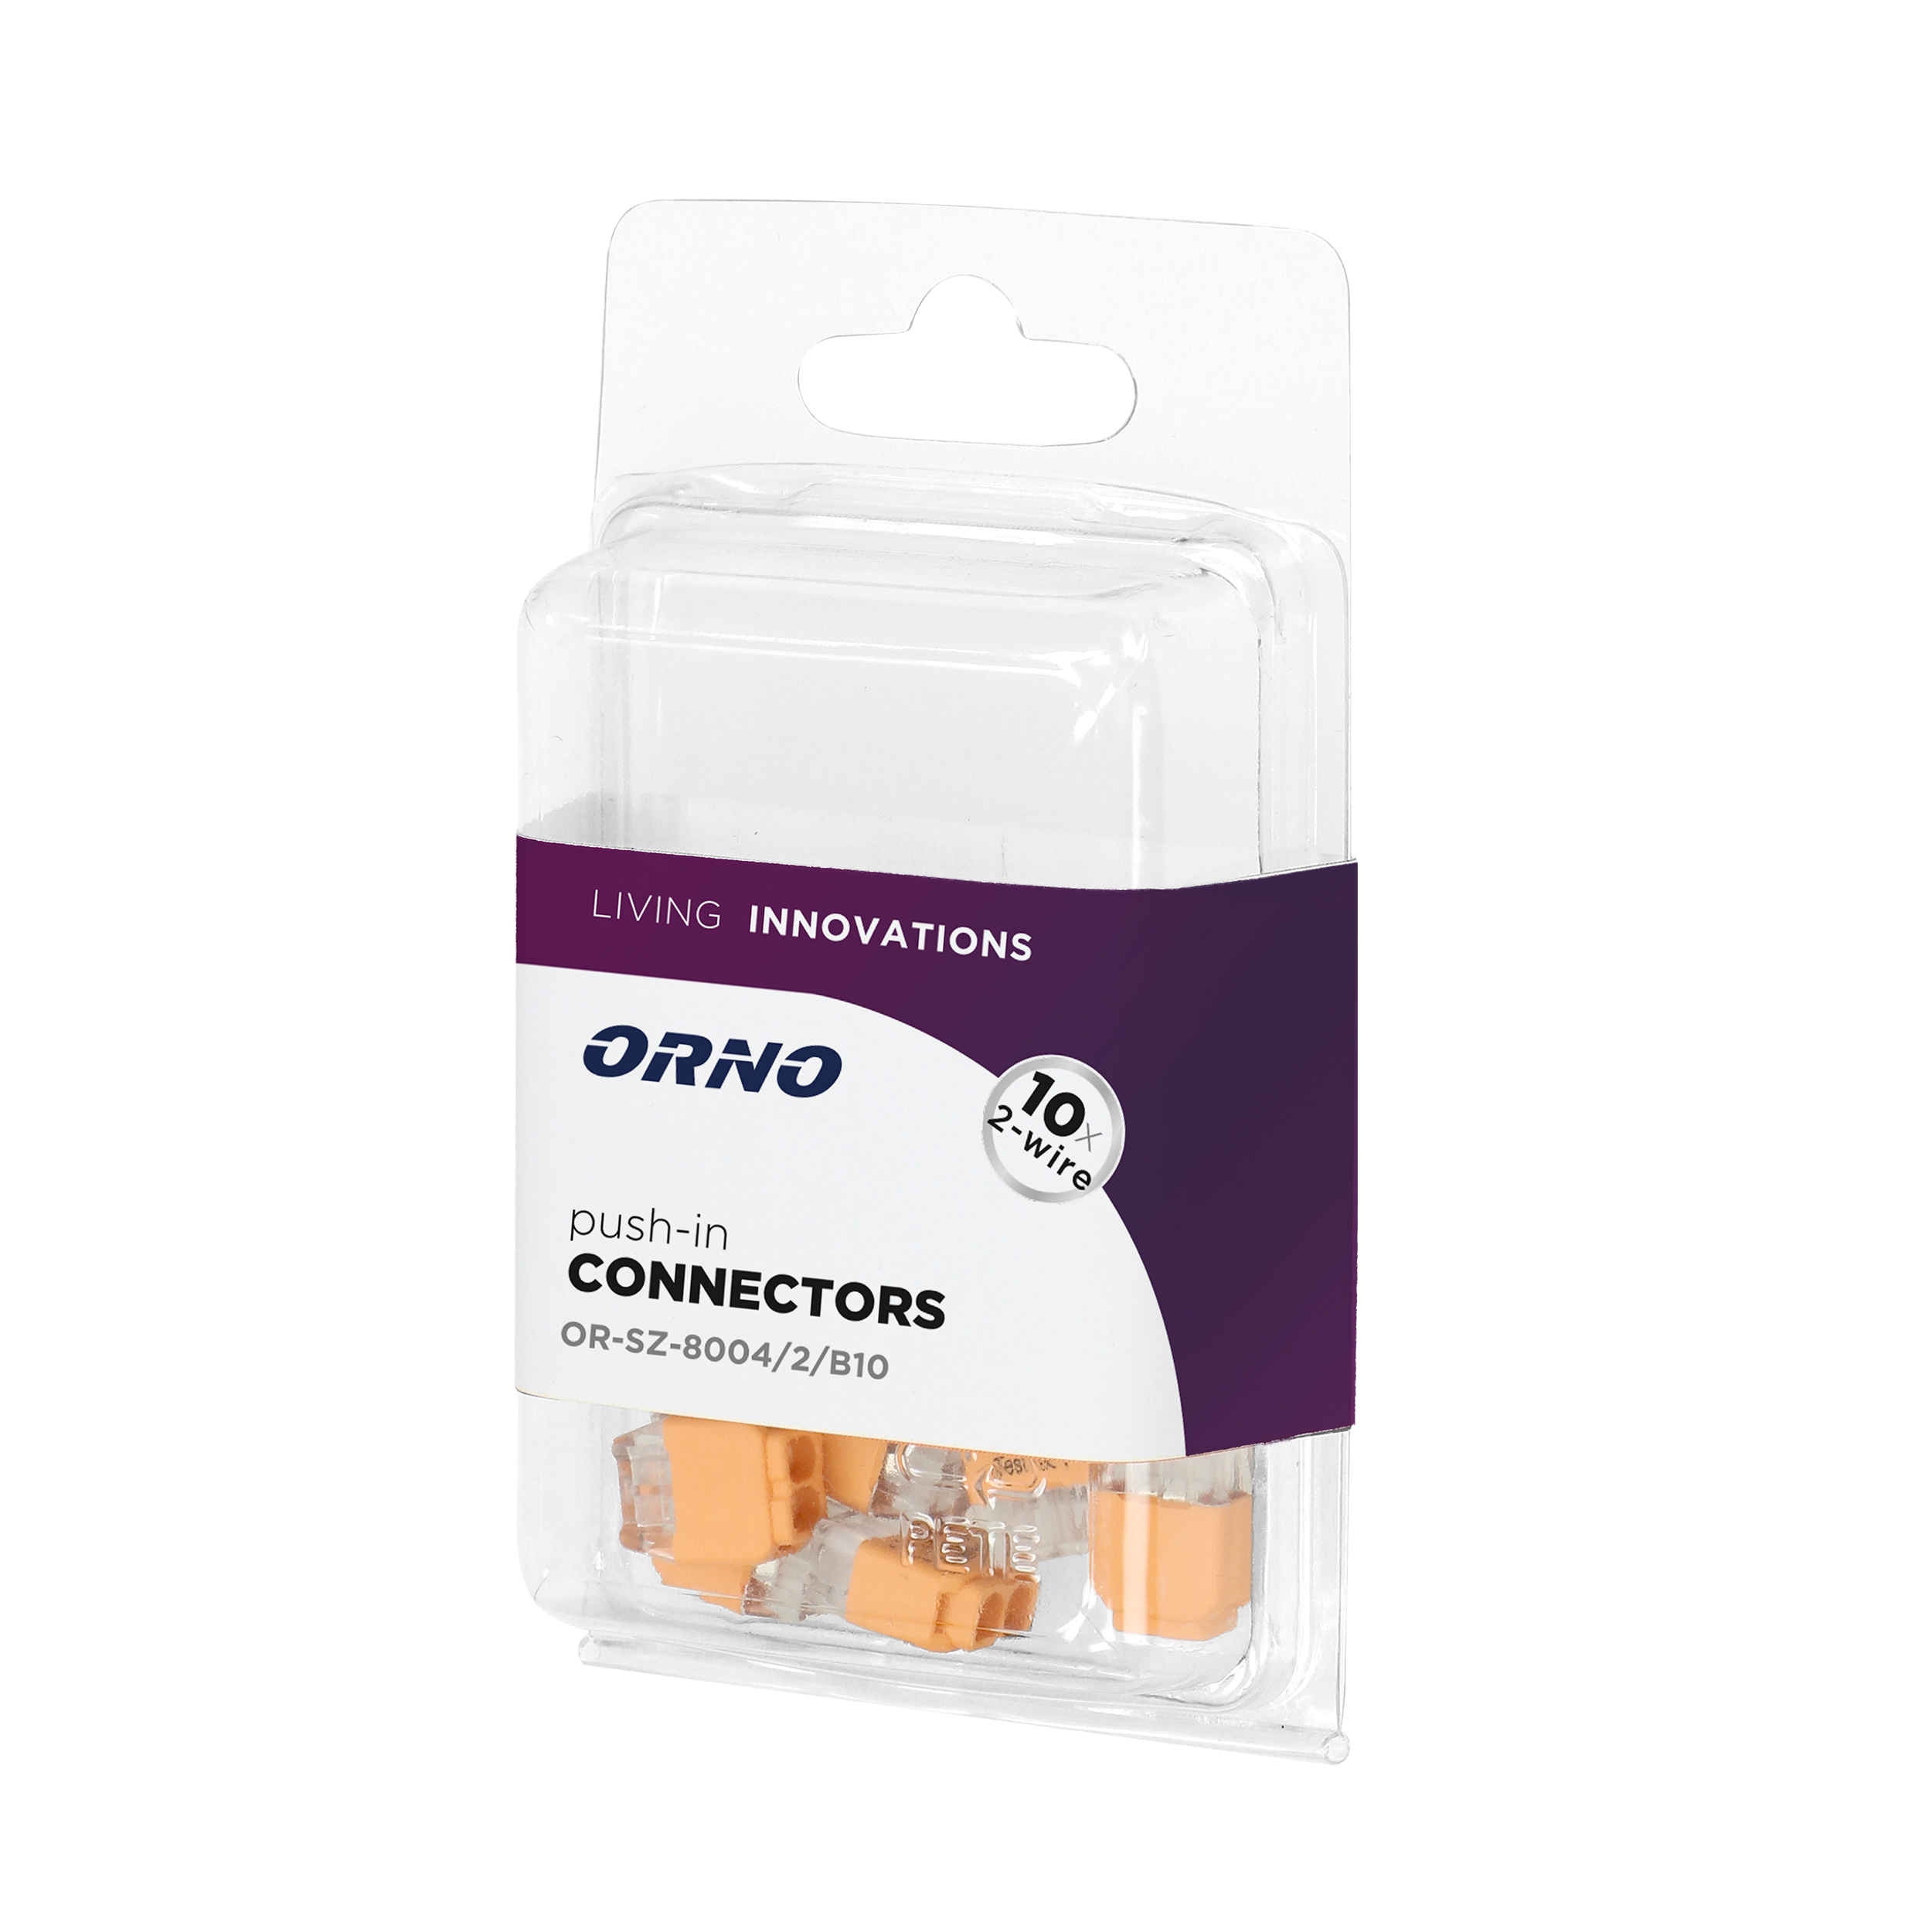 Installation push-in connector for 2 cables (rigid cable 0.75-2.5mm2), IEC 300V/24A, blister pack 10 pcs.